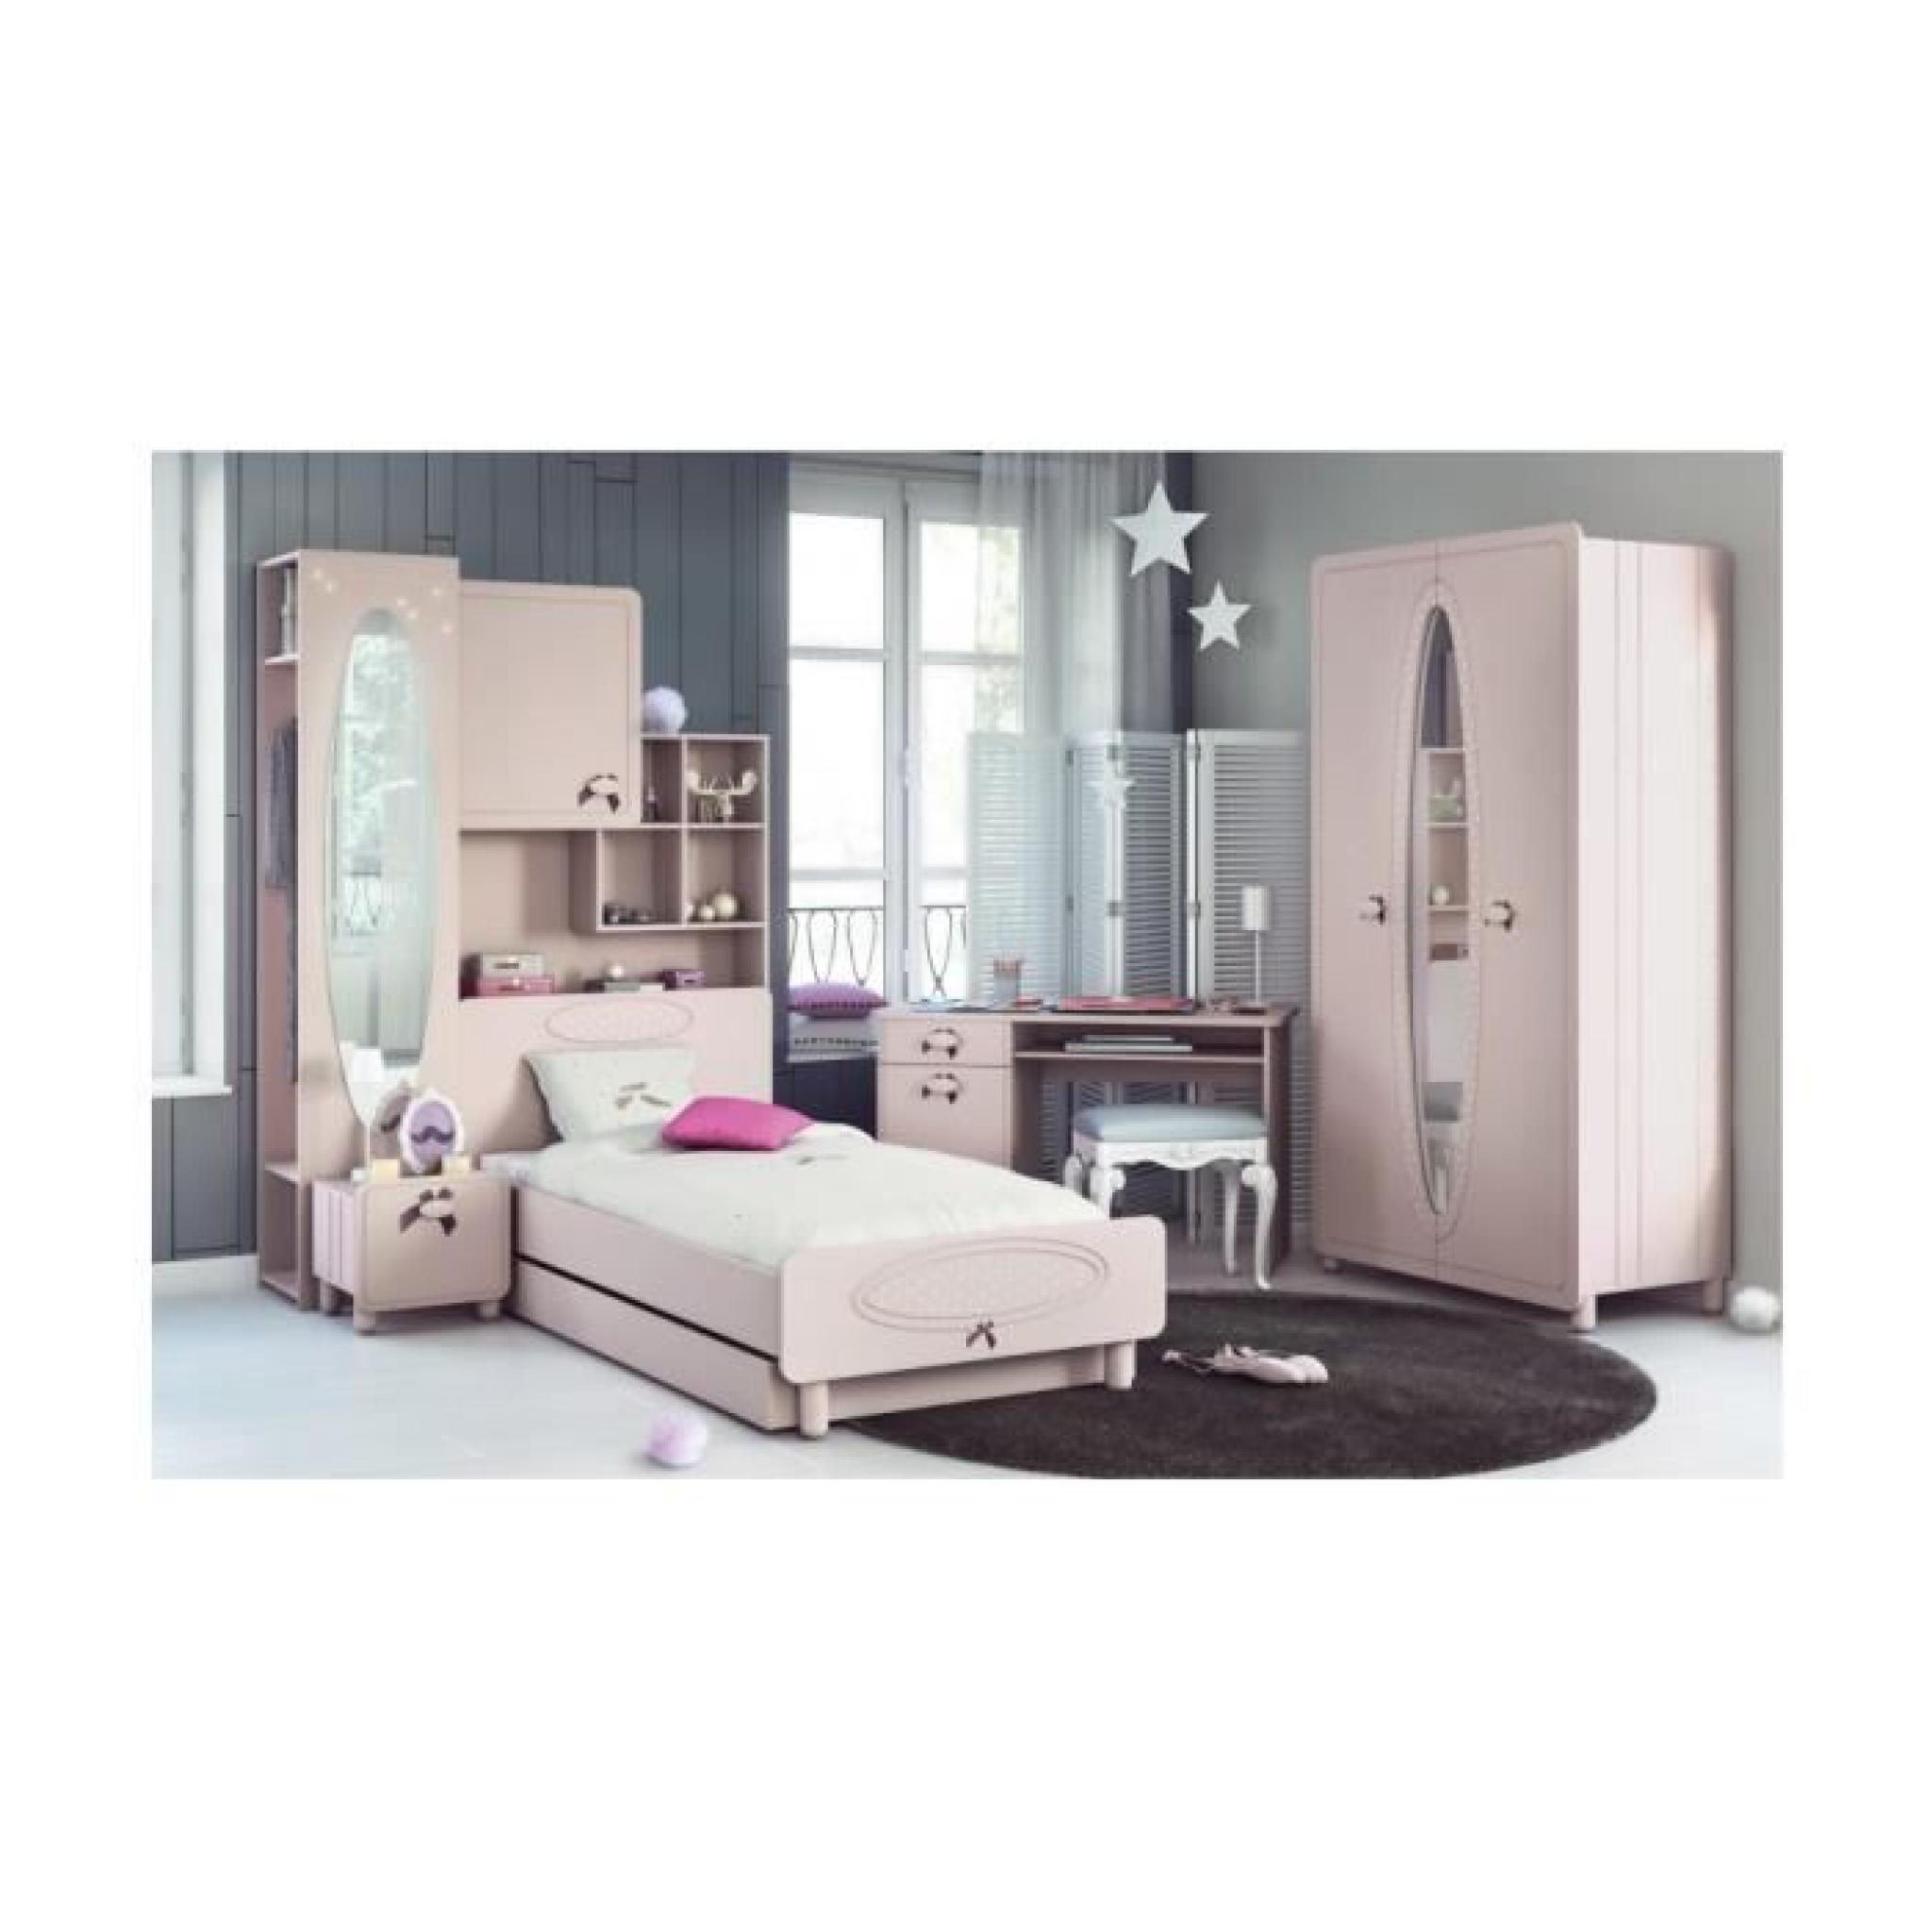 armoire pont de lit enfant rose avec miroir 1 porte 5. Black Bedroom Furniture Sets. Home Design Ideas